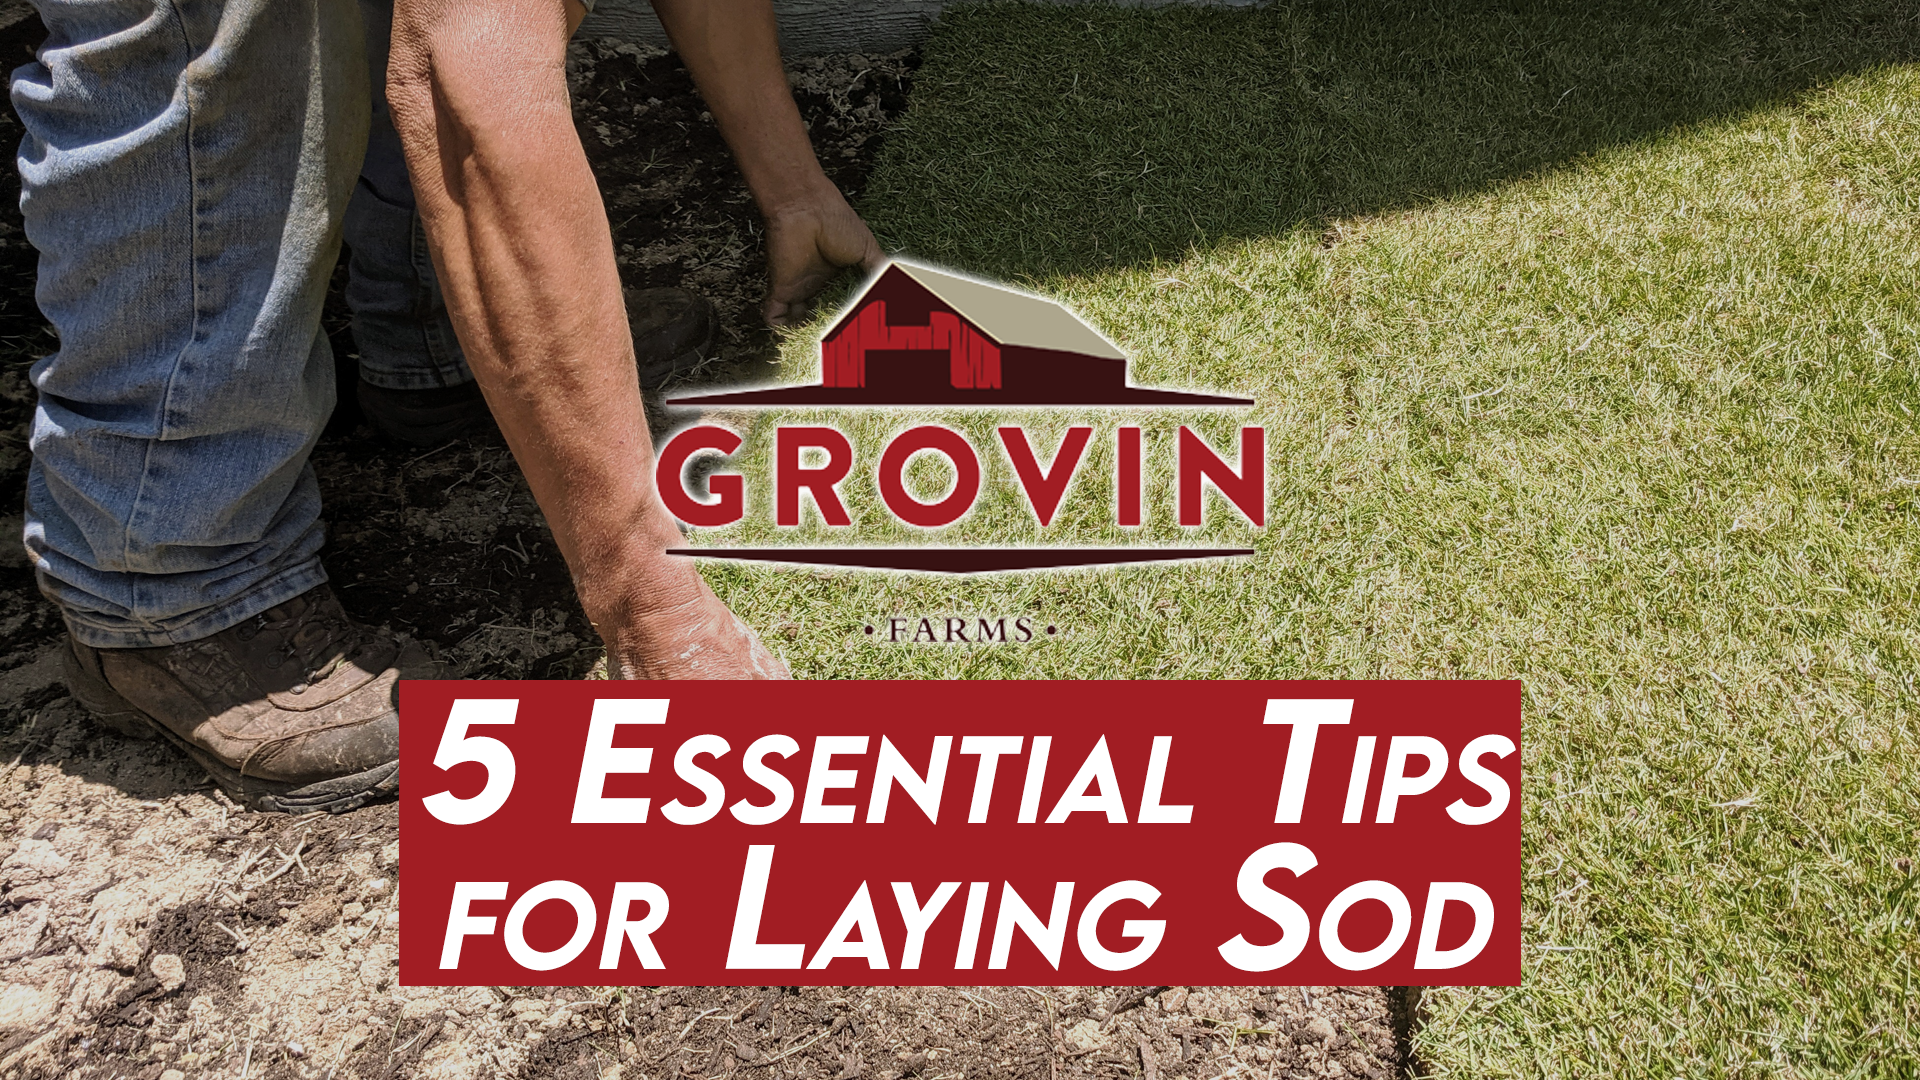 Tips for laying sod, bahiagrass sod, sod farms near Ocala, bahia sod, St. Augustine sod, sod installation | Grovin Farms, FL